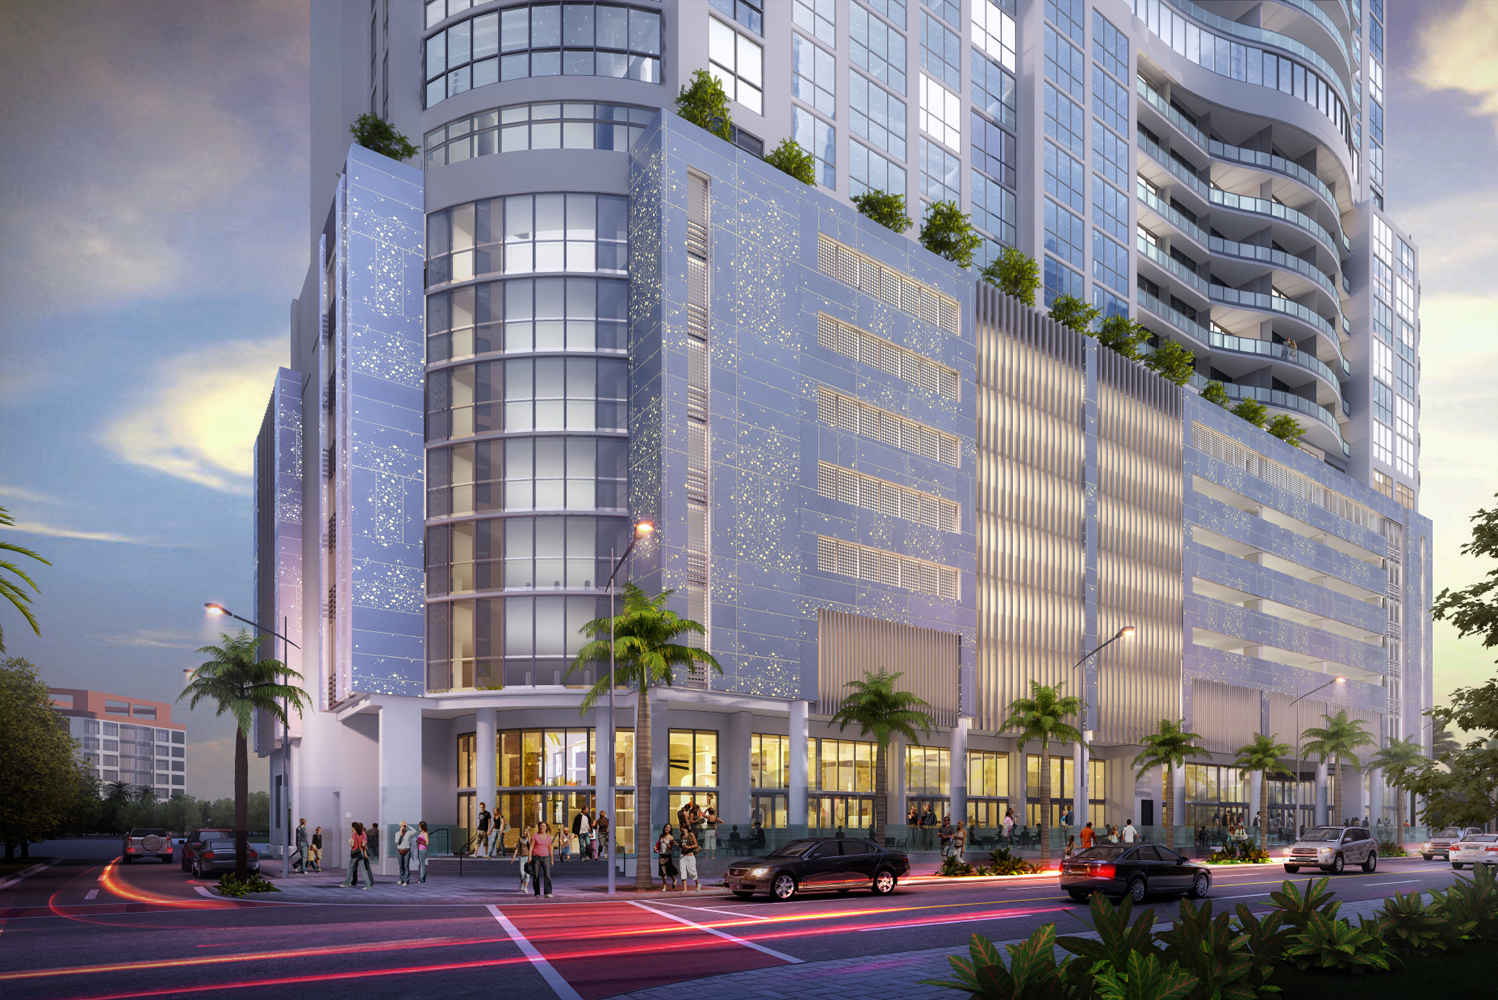 100 Las Olas Tower is scheduled to open in Fort Lauderdale in 2020.